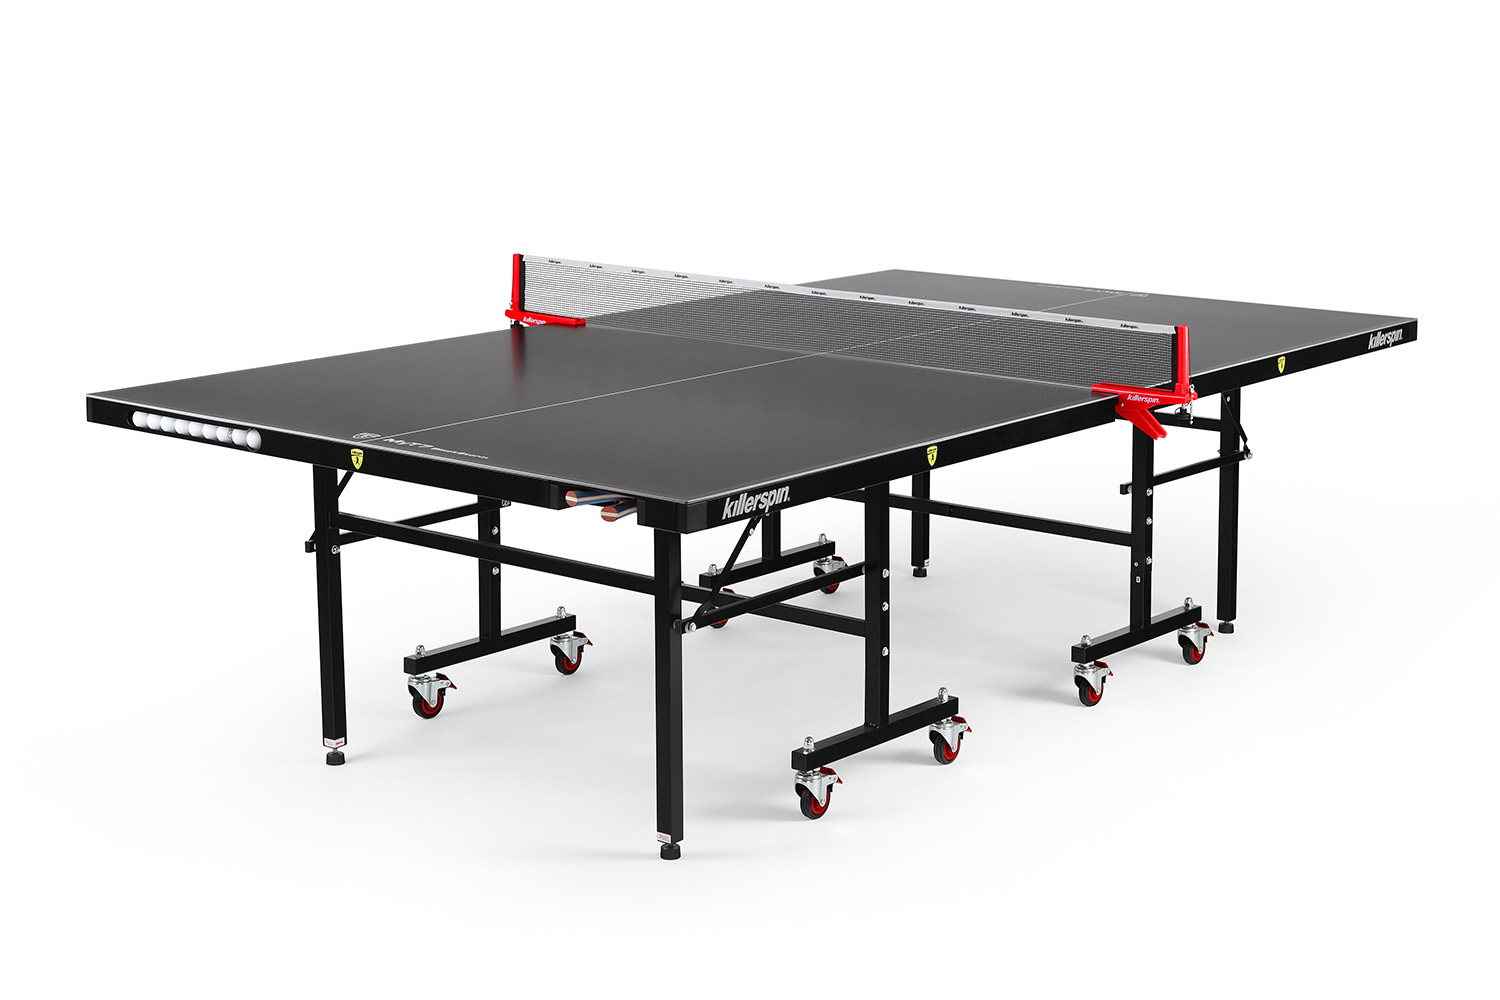 """Killerspin MyT7 BlackStorm, ITTF Official Size, Folding Outdoor, Tennis Table, 9' x 5' x 2.5"""" by Supplier Generic"""